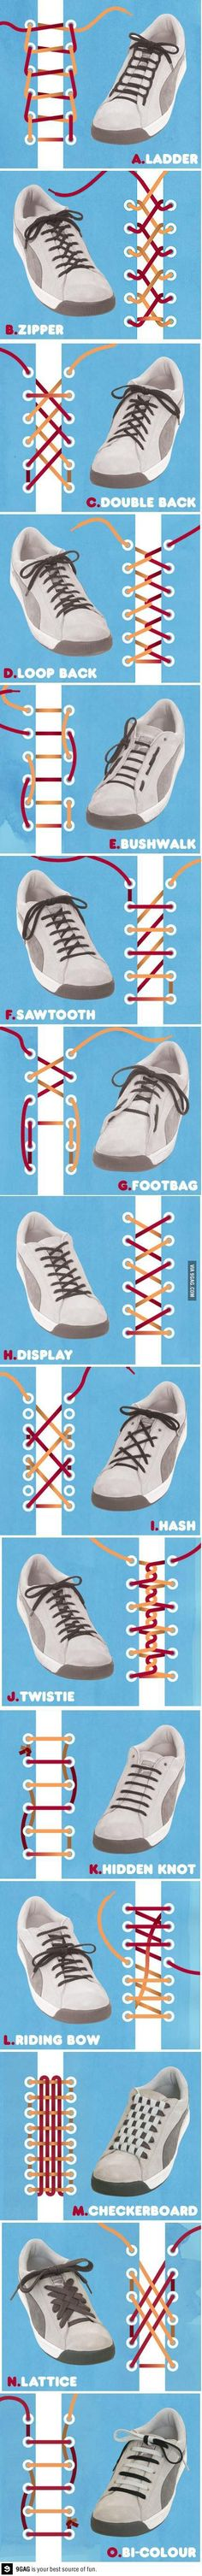 The best DIY projects & DIY ideas and tutorials: sewing, paper craft, DIY. Ideas About DIY Life Hacks & Crafts 2017 / 2018 Who knew there were so many different ways to tie your shoes? Ways To Tie Shoelaces, Your Shoes, Good To Know, Just In Case, Helpful Hints, Life Hacks, Techno, Diy Projects, Mens Fashion